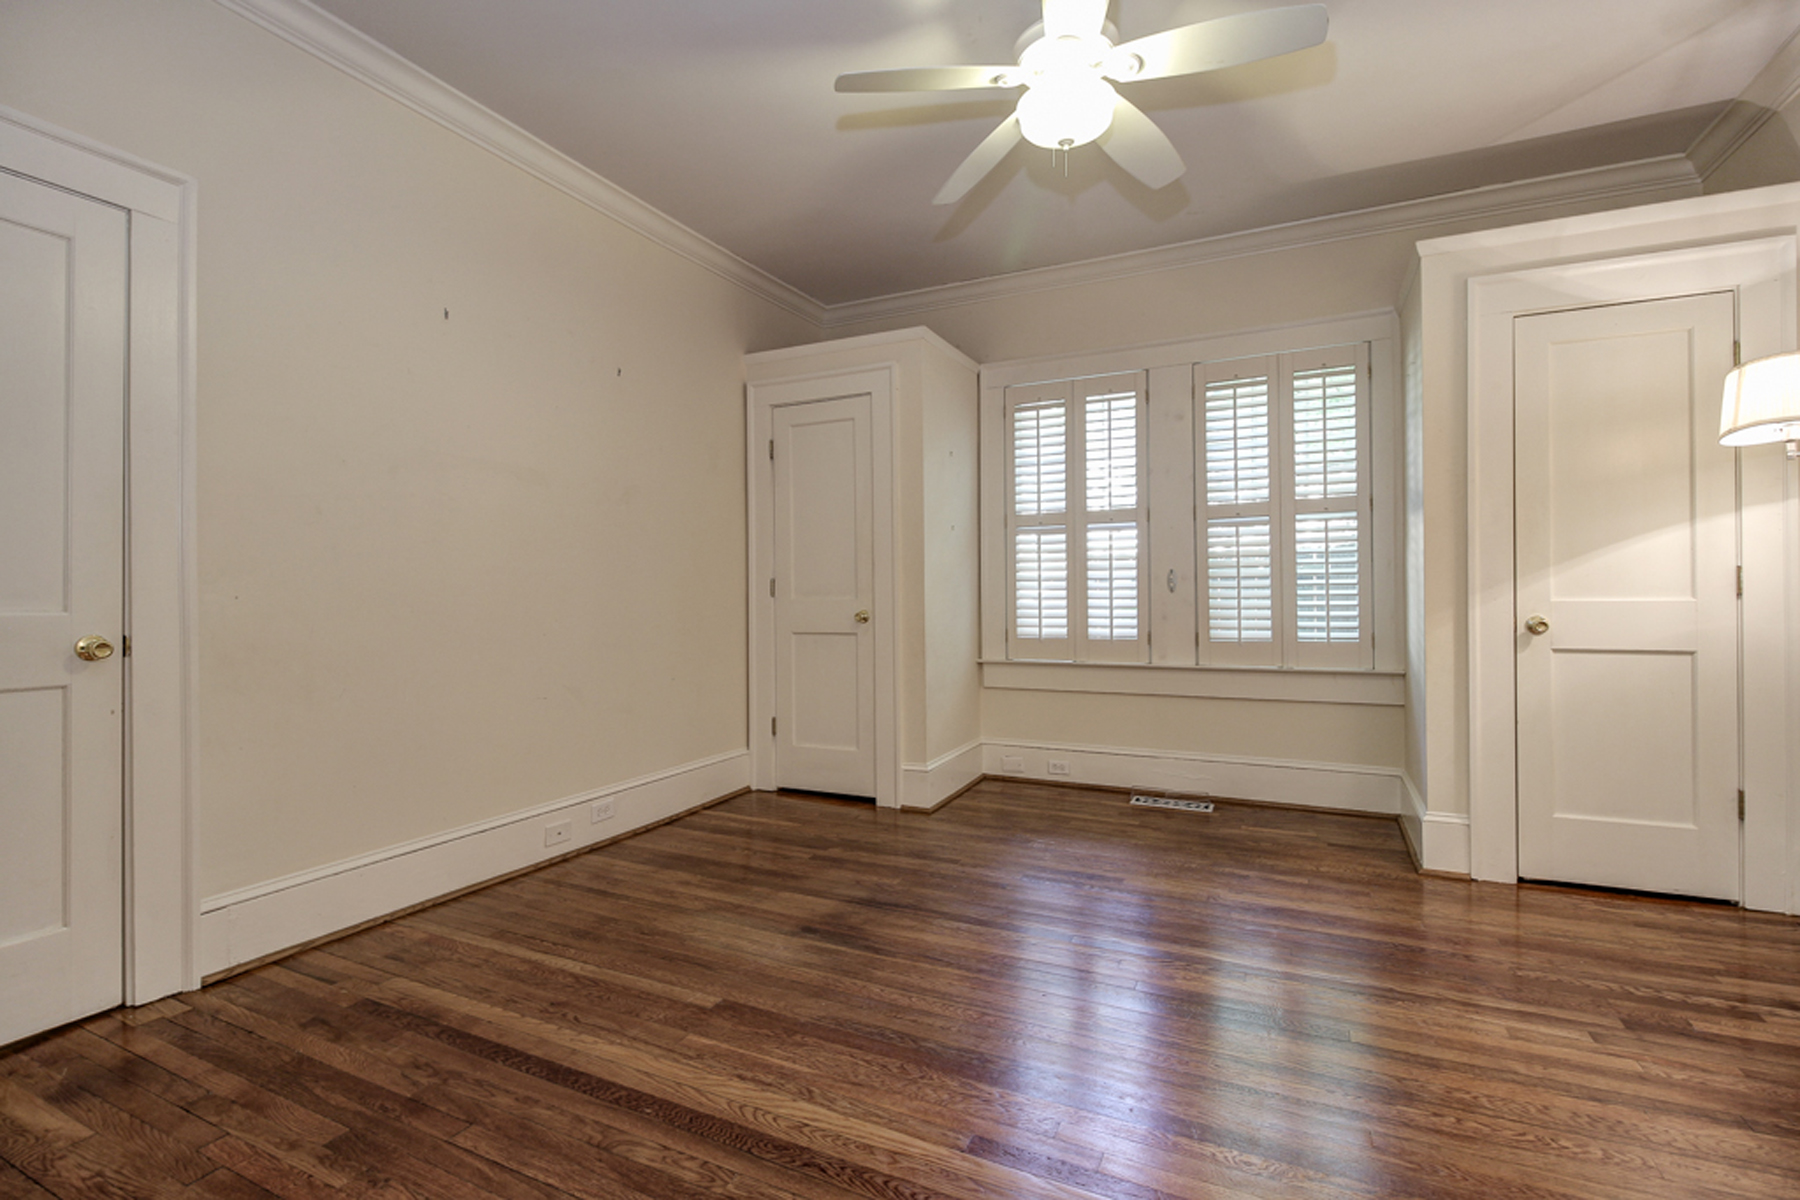 Additional photo for property listing at Virginia Highlands Bungalow 618 Cresthill Avenue Atlanta, Georgia 30306 Hoa Kỳ